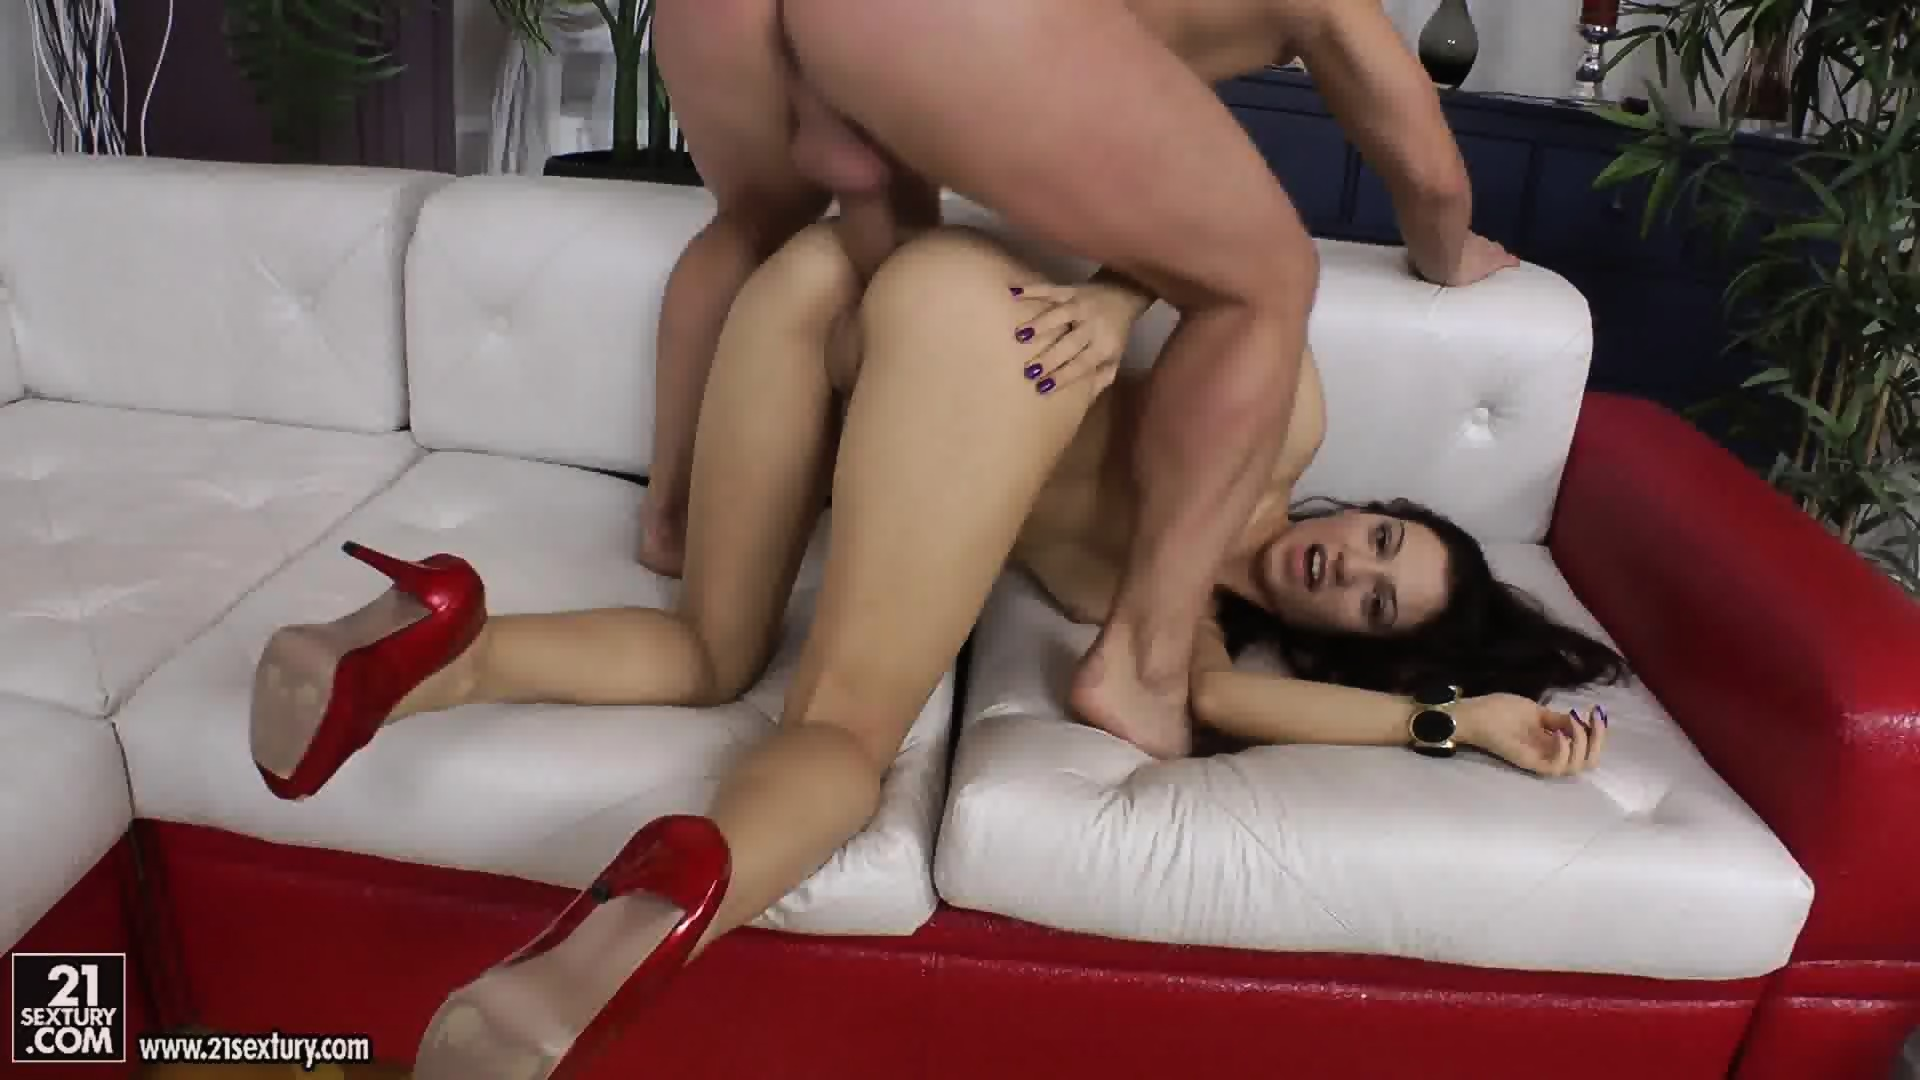 Super Skinny Girl Gets Fucked